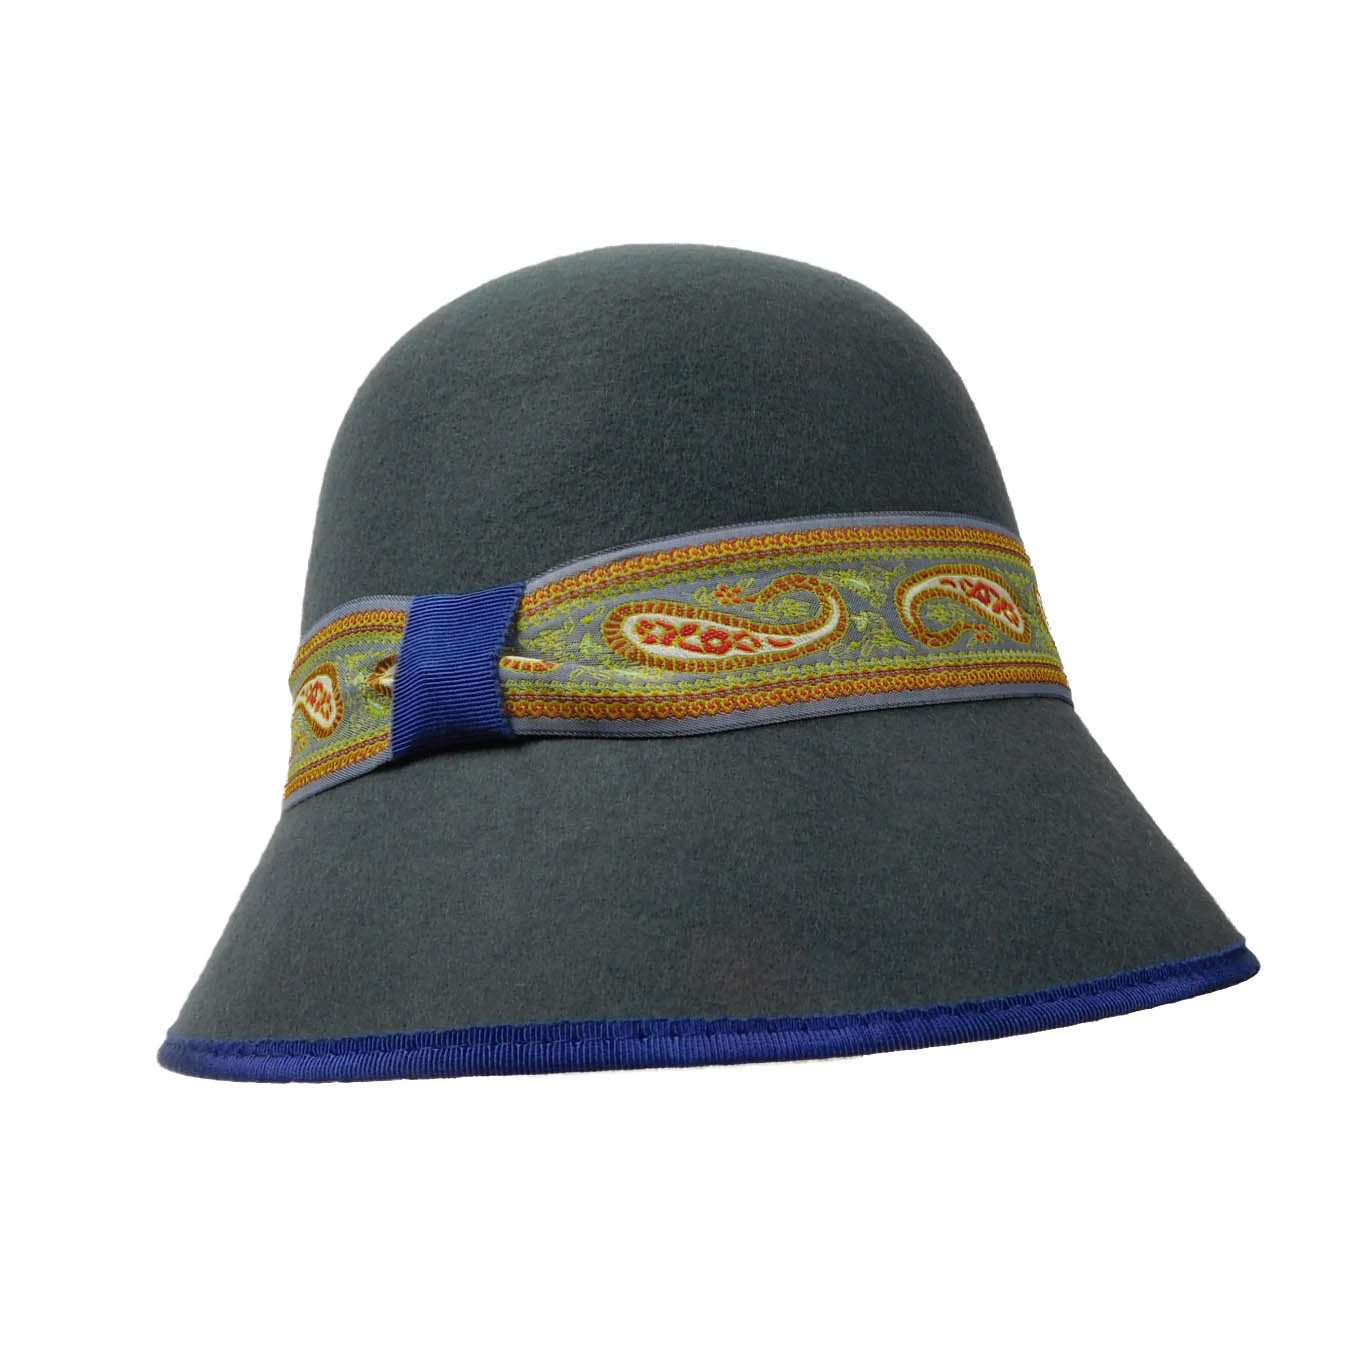 Black Wool Cloche with Paisley Band - SetarTrading Hats